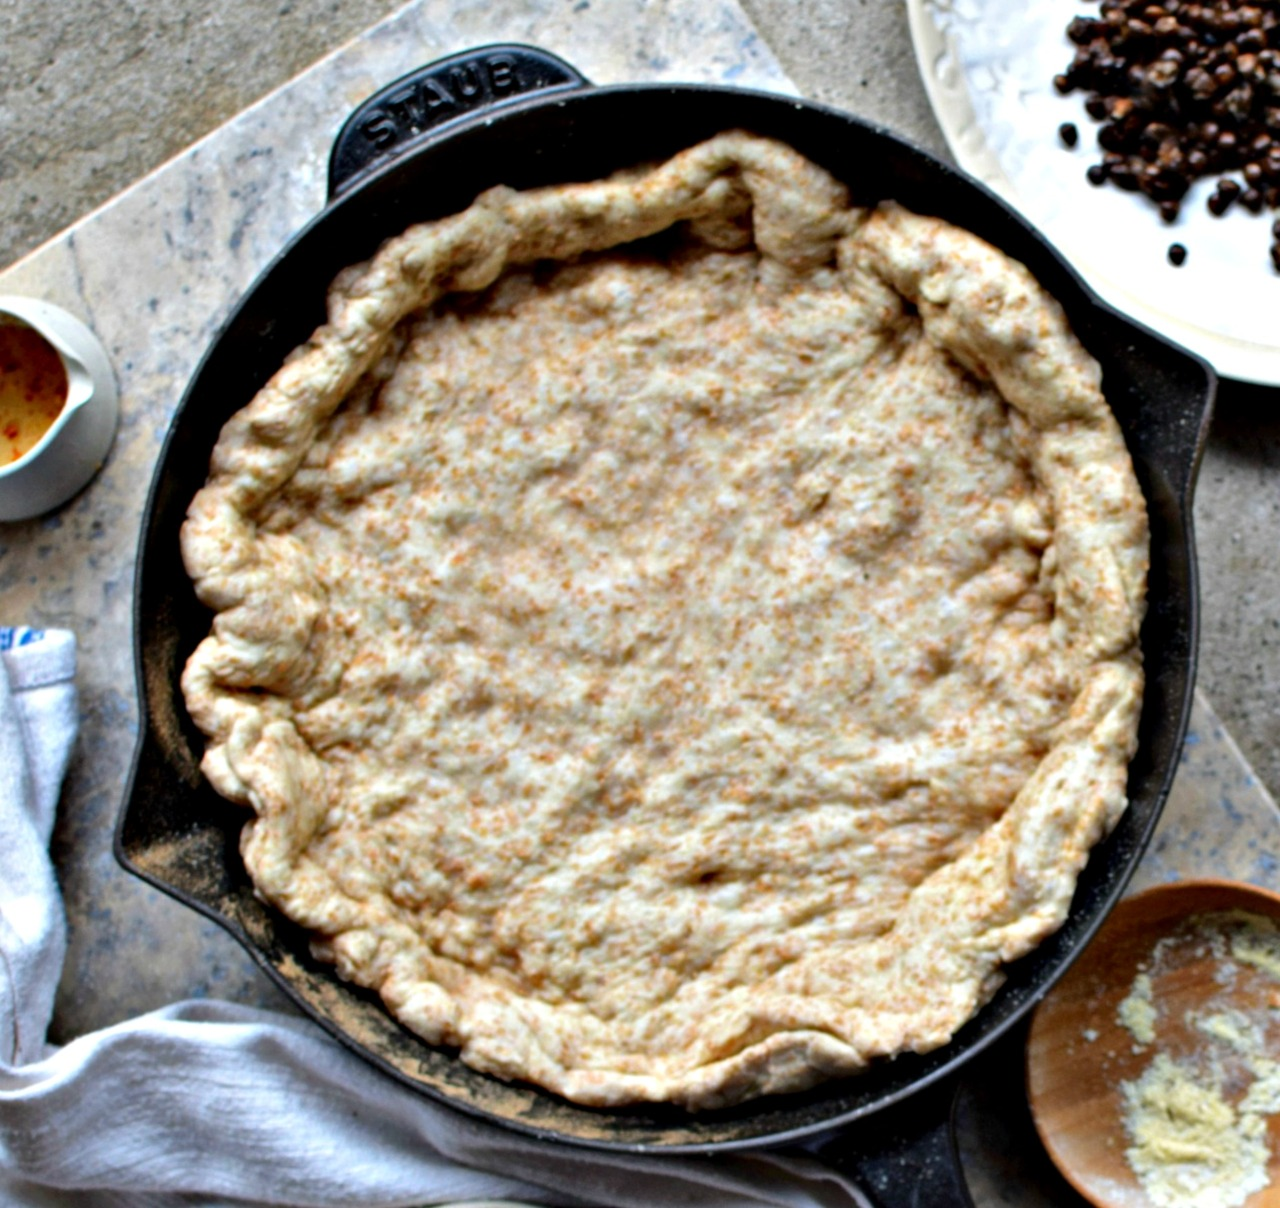 Make pizza in a cast iron skillet for a quick and healthy midweek meal that the whole family will love. Use my quick wholewheat dough - or a pre-made - and top with smoked mozzarella and cooked lentils for a delicious, vegetarian deep-dish dinner, or hearty snack. Vegan adaptations are given.